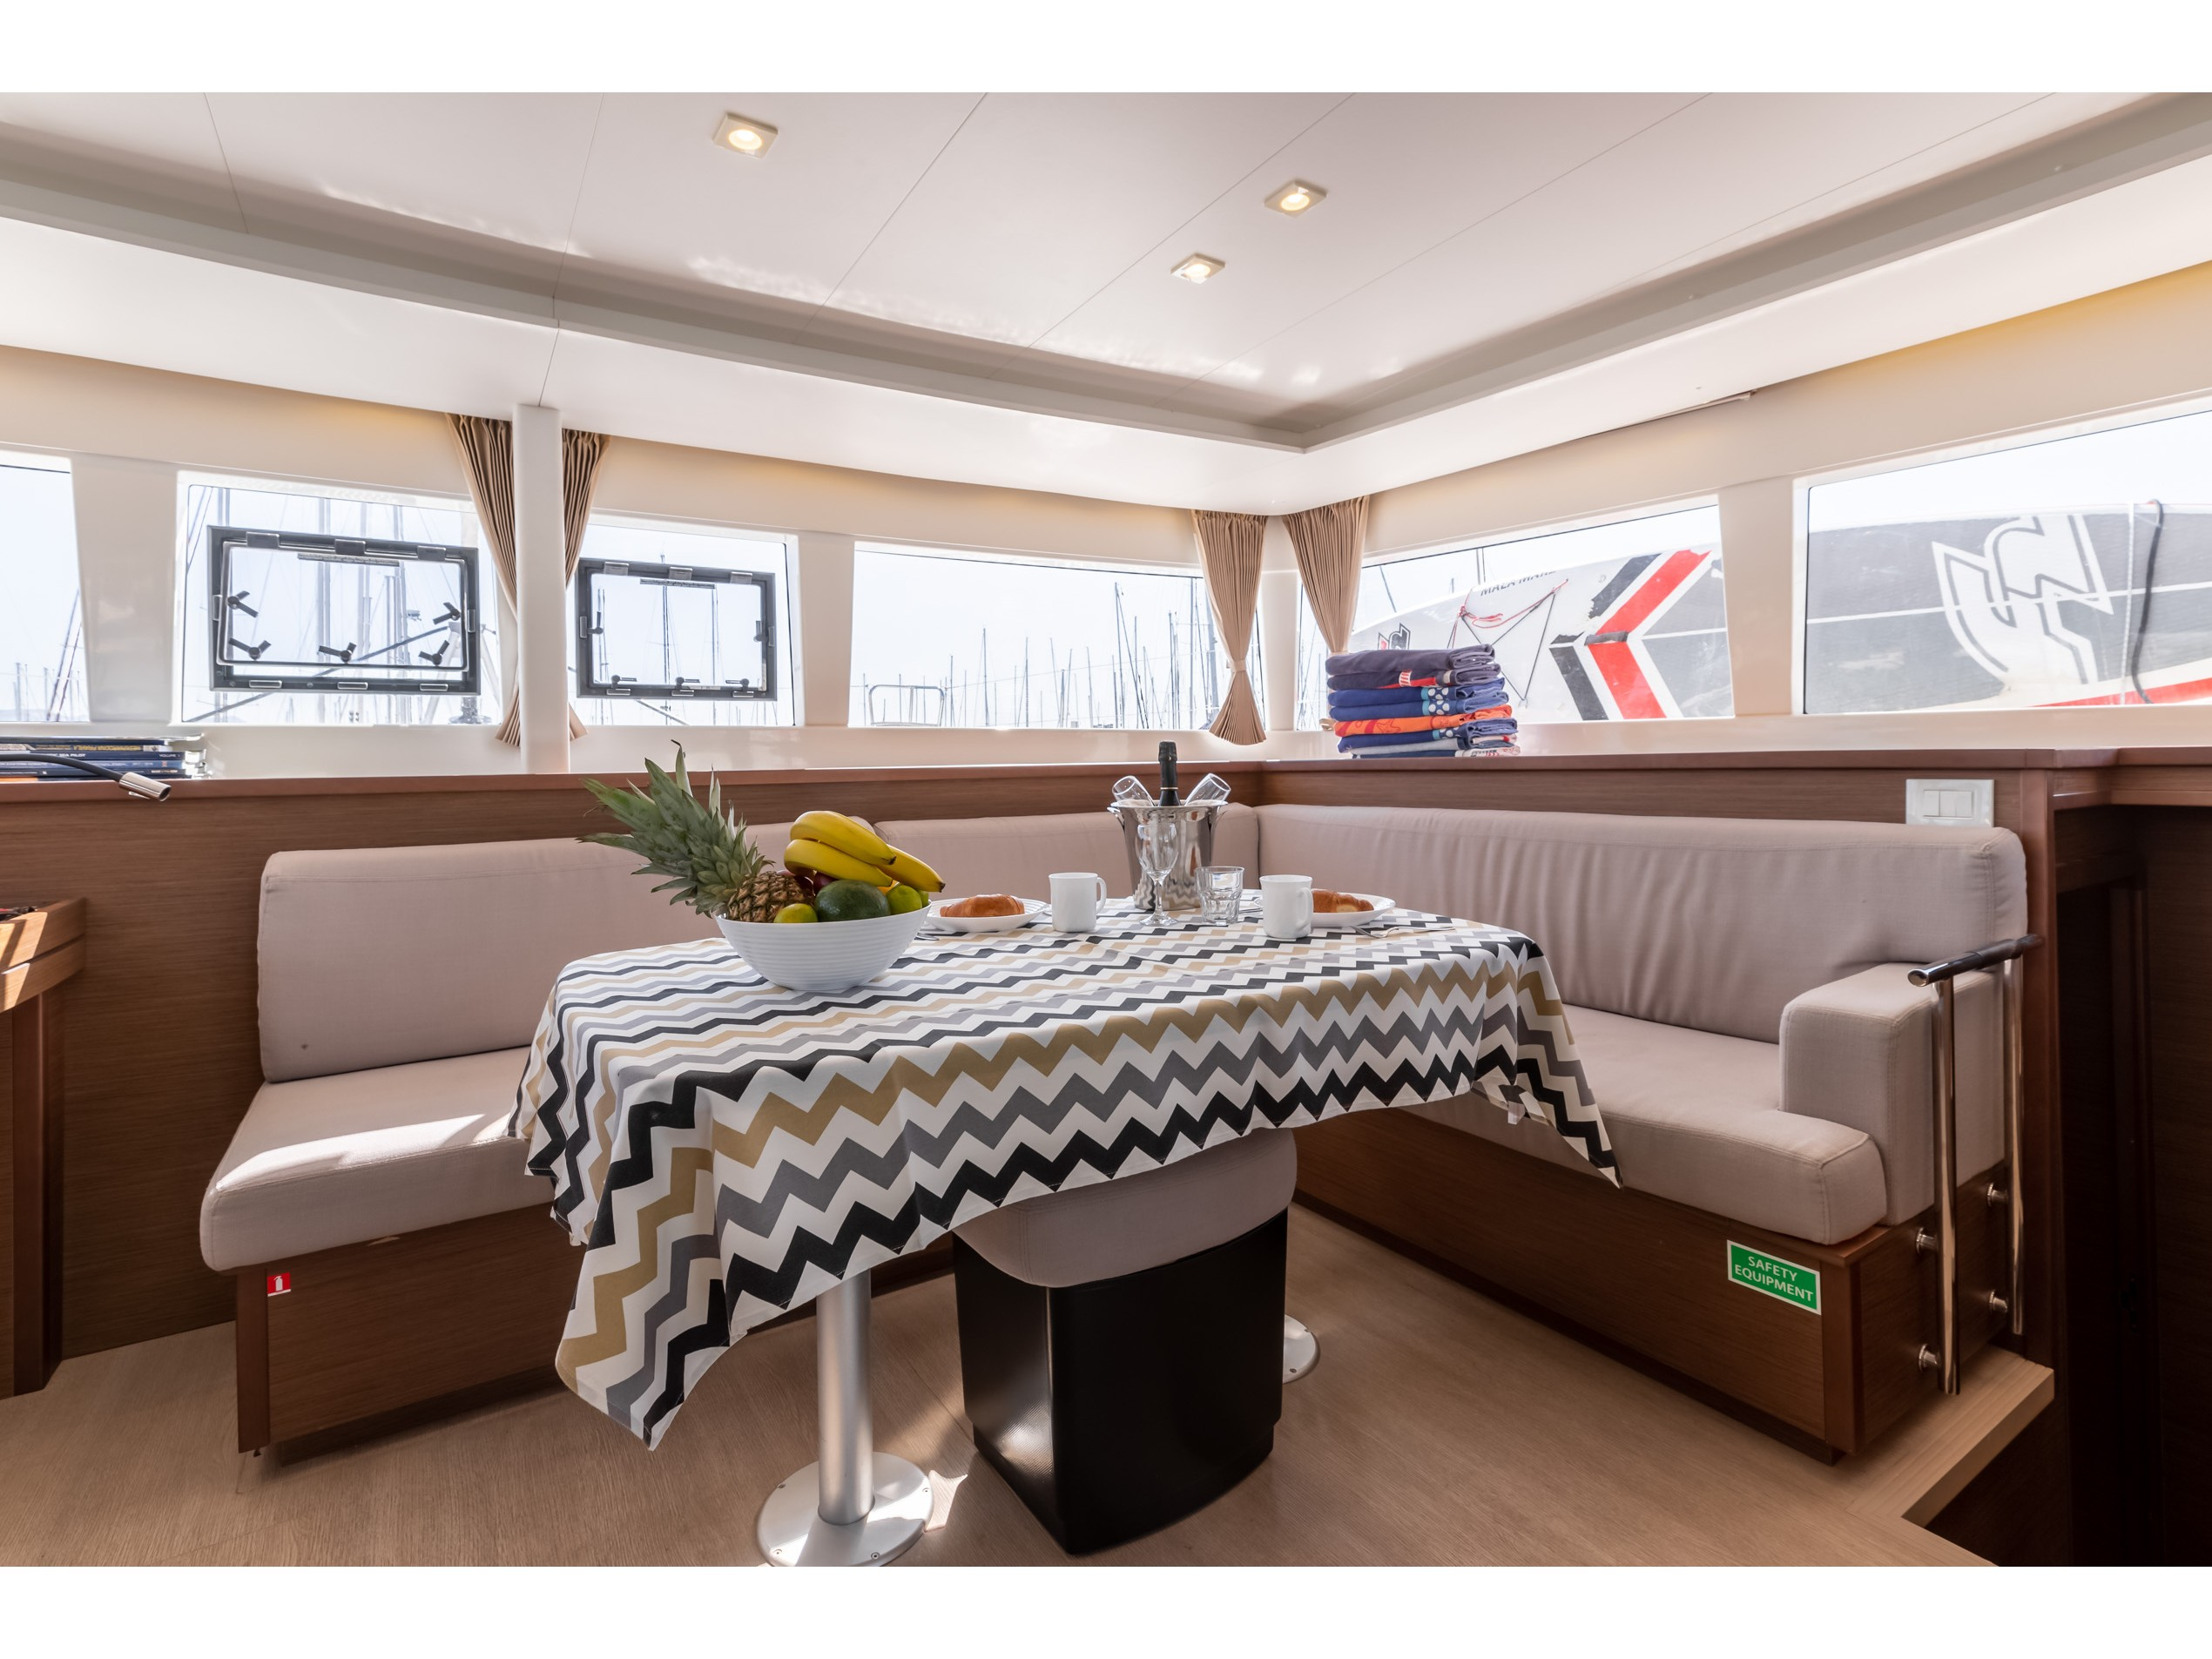 Lagoon 450 F (2018) equipped with generator, A/C ( (MALA MARE) Interior image - 2